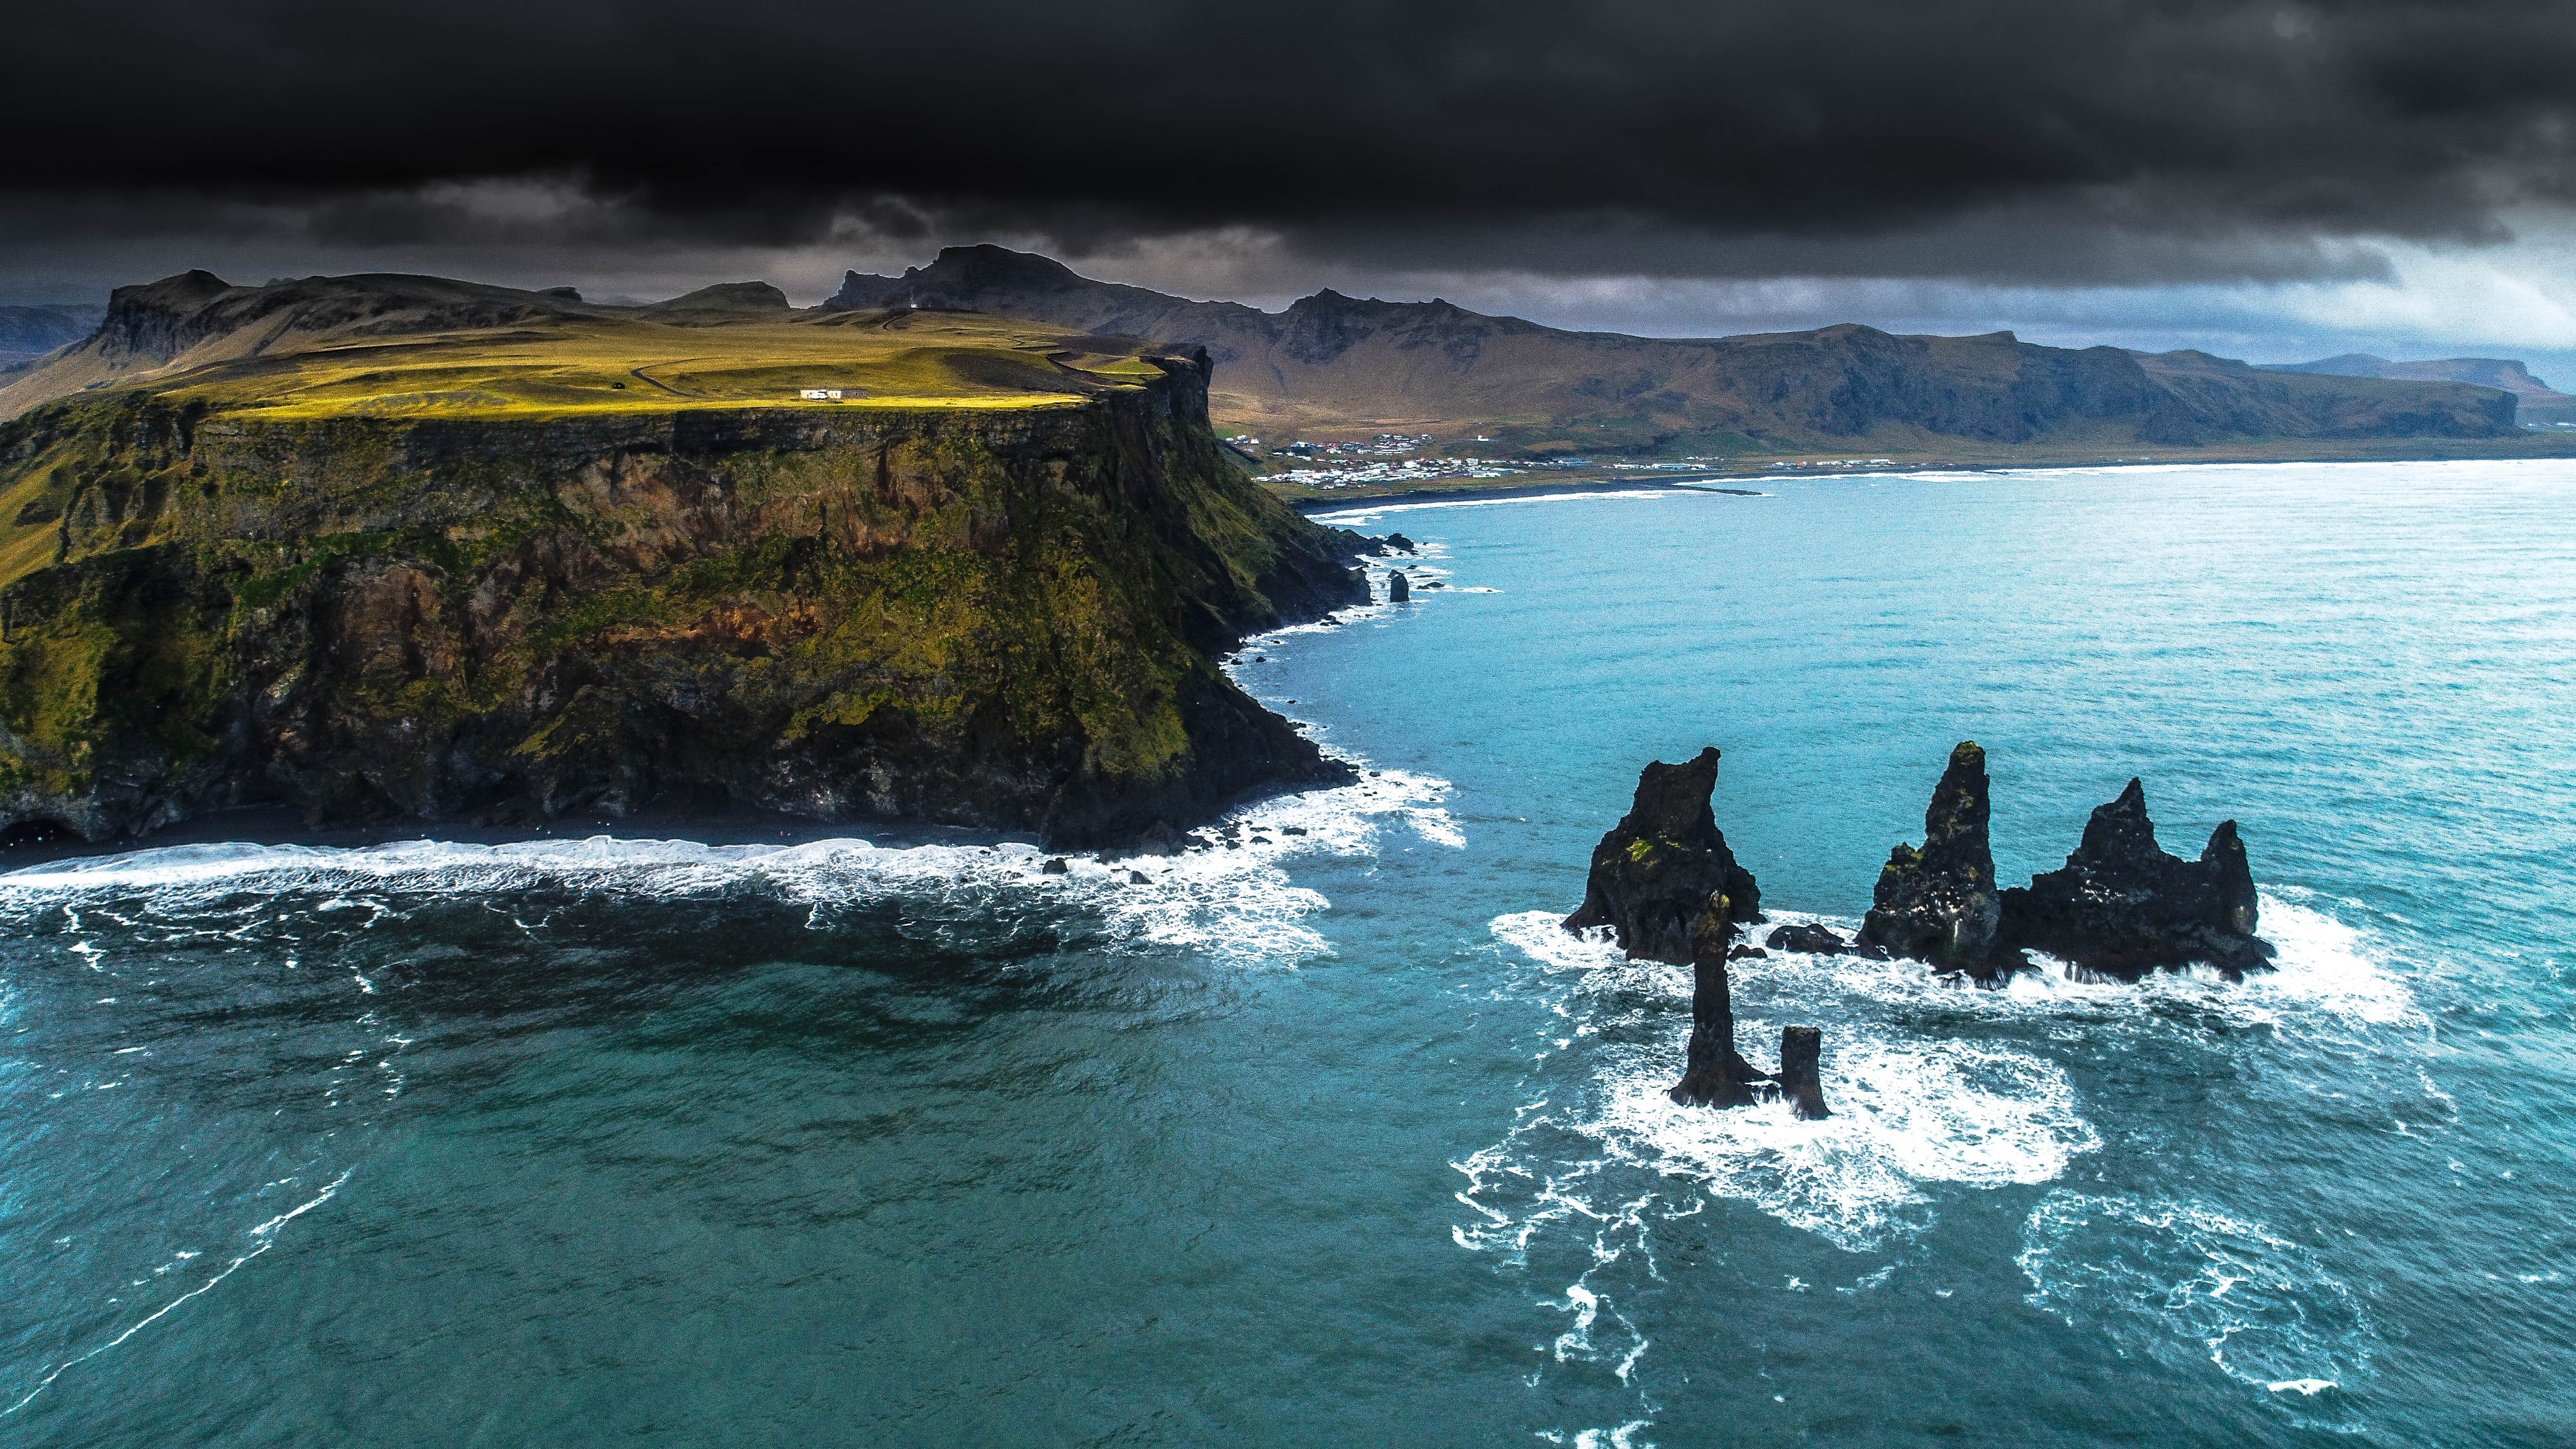 black sea stacks surrounded by body of water beside mountain under cloudy sky